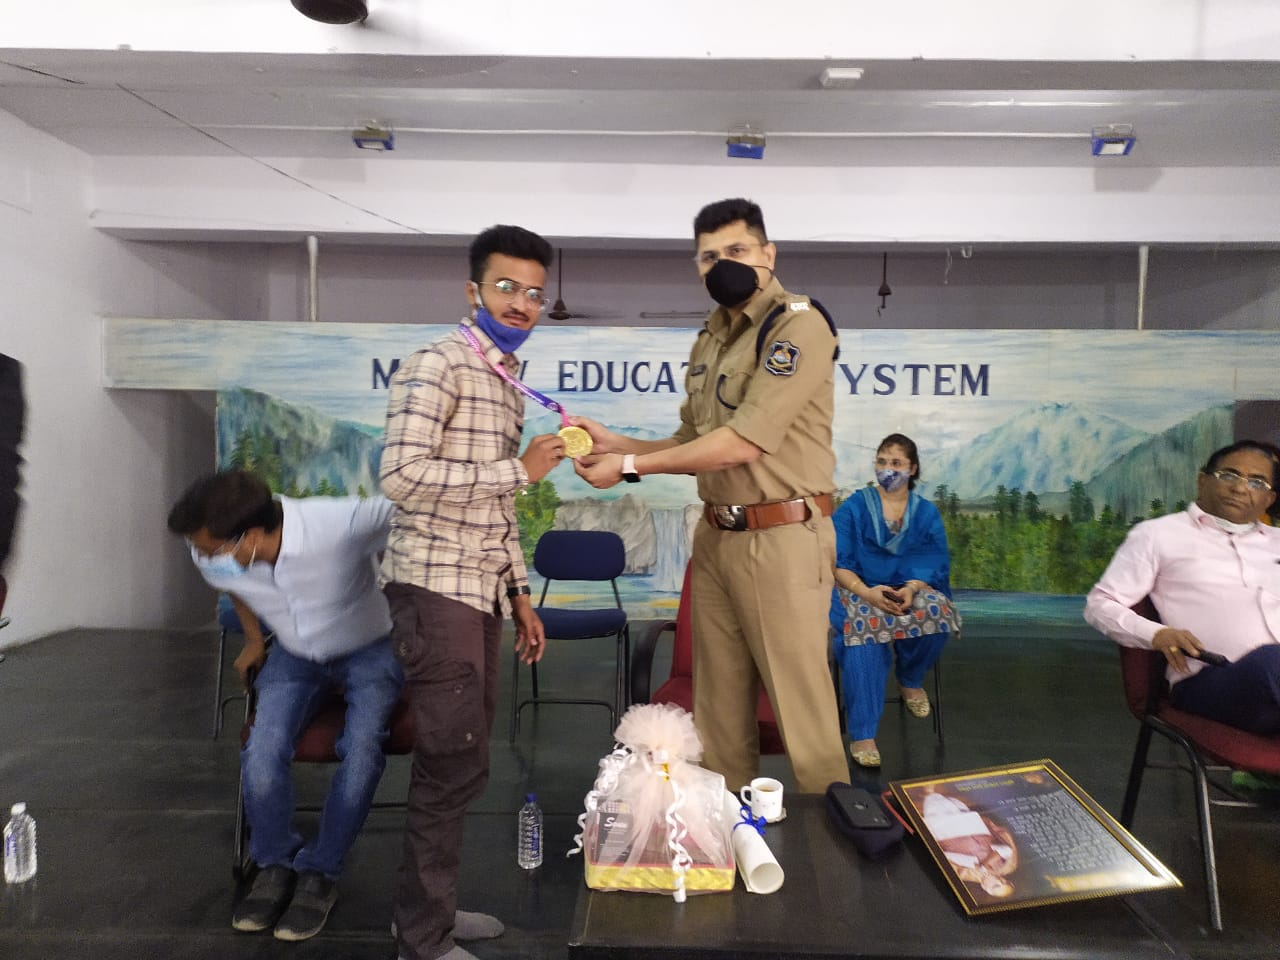 AN ENCOURAGING VISIT OF IPS OFFICER ACHAL TYAGI